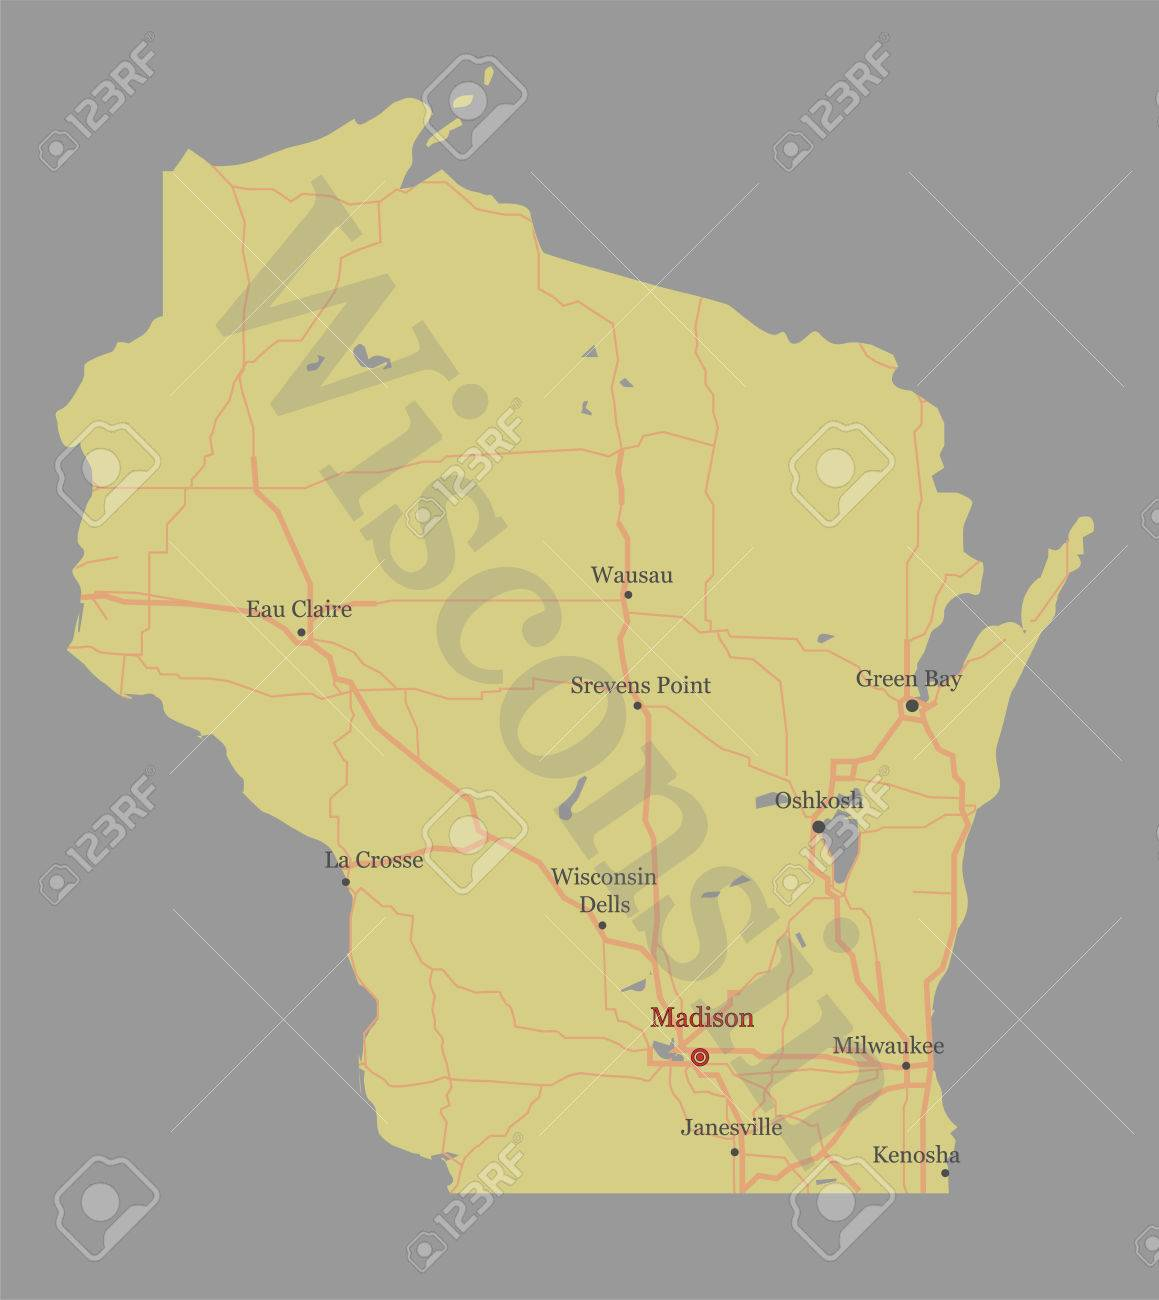 Images Of Wisconsin The United States Map on wisconsin world map, wisconsin indian map, wisconsin map of islands, wisconsin usa map,